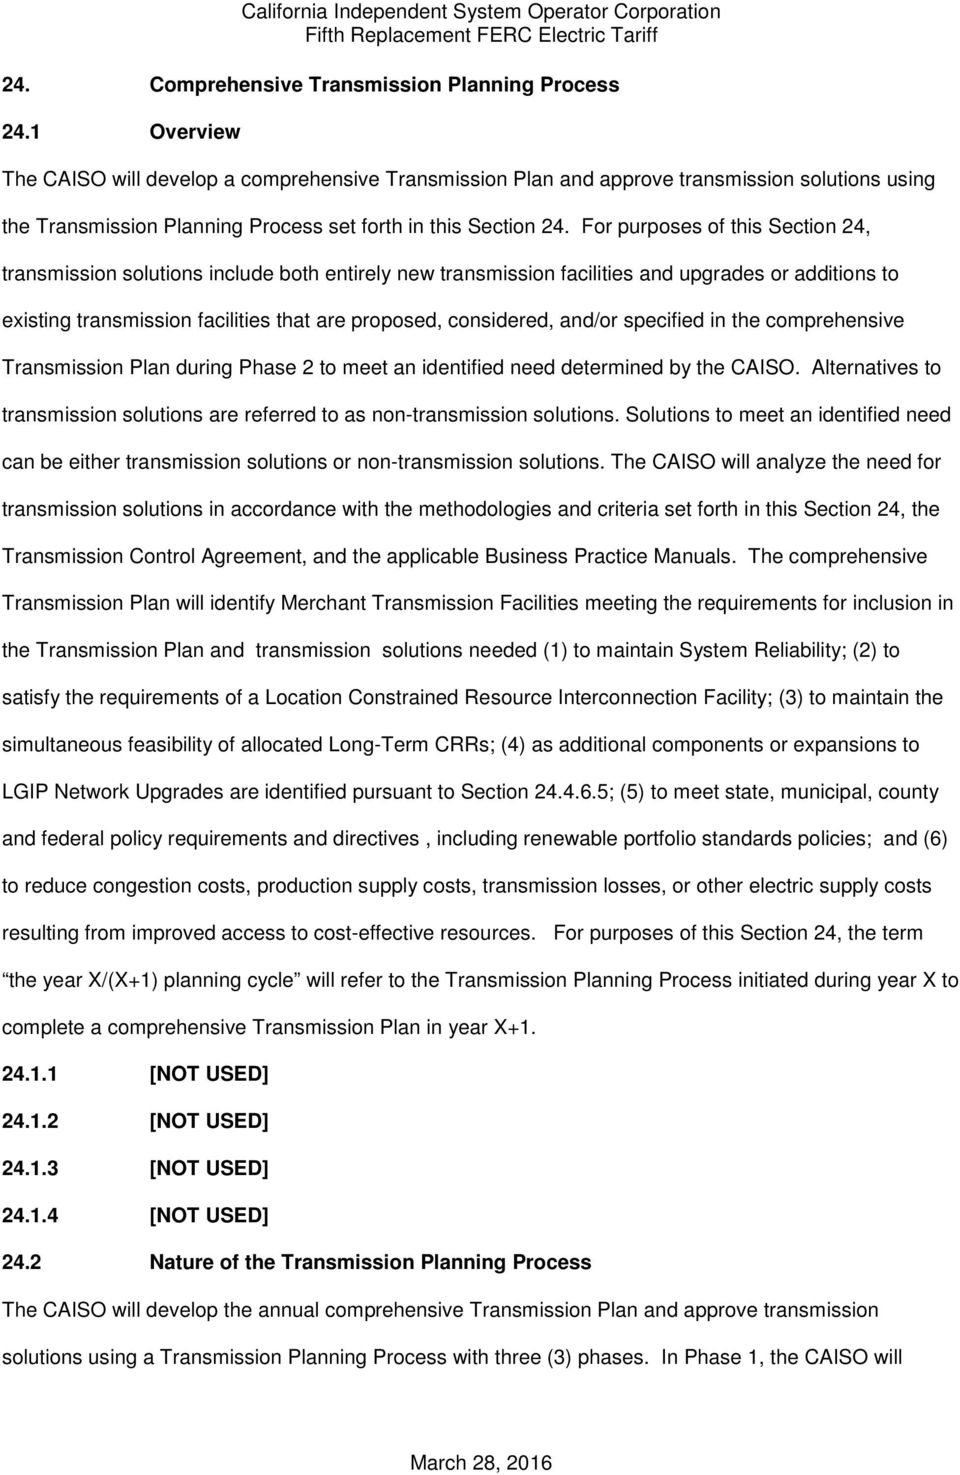 For purposes of this Section 24, transmission solutions include both entirely new transmission facilities and upgrades or additions to existing transmission facilities that are proposed, considered,